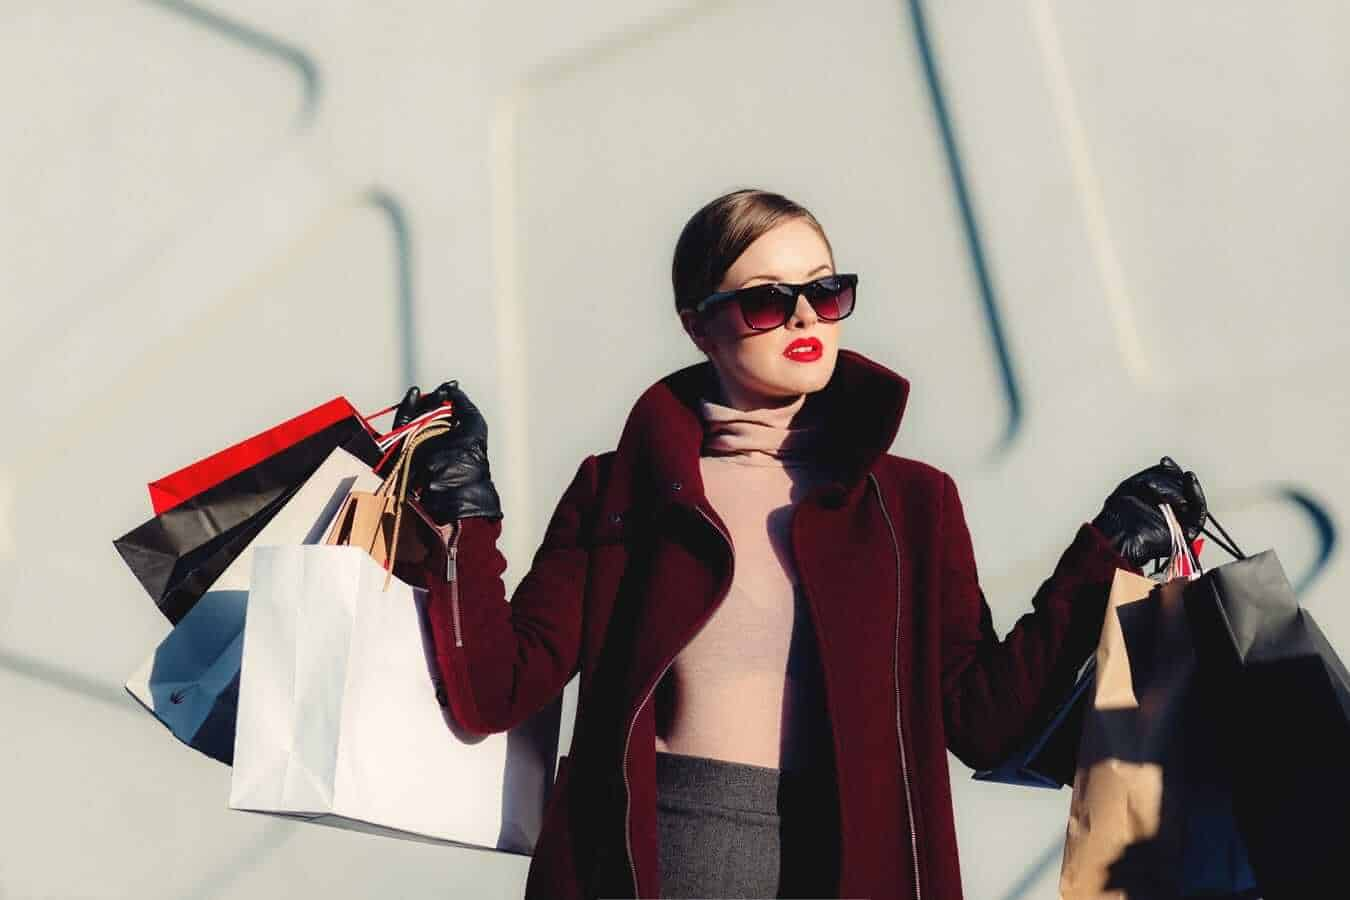 Girl Talk: Shopping Makes Me Want To Die Inside